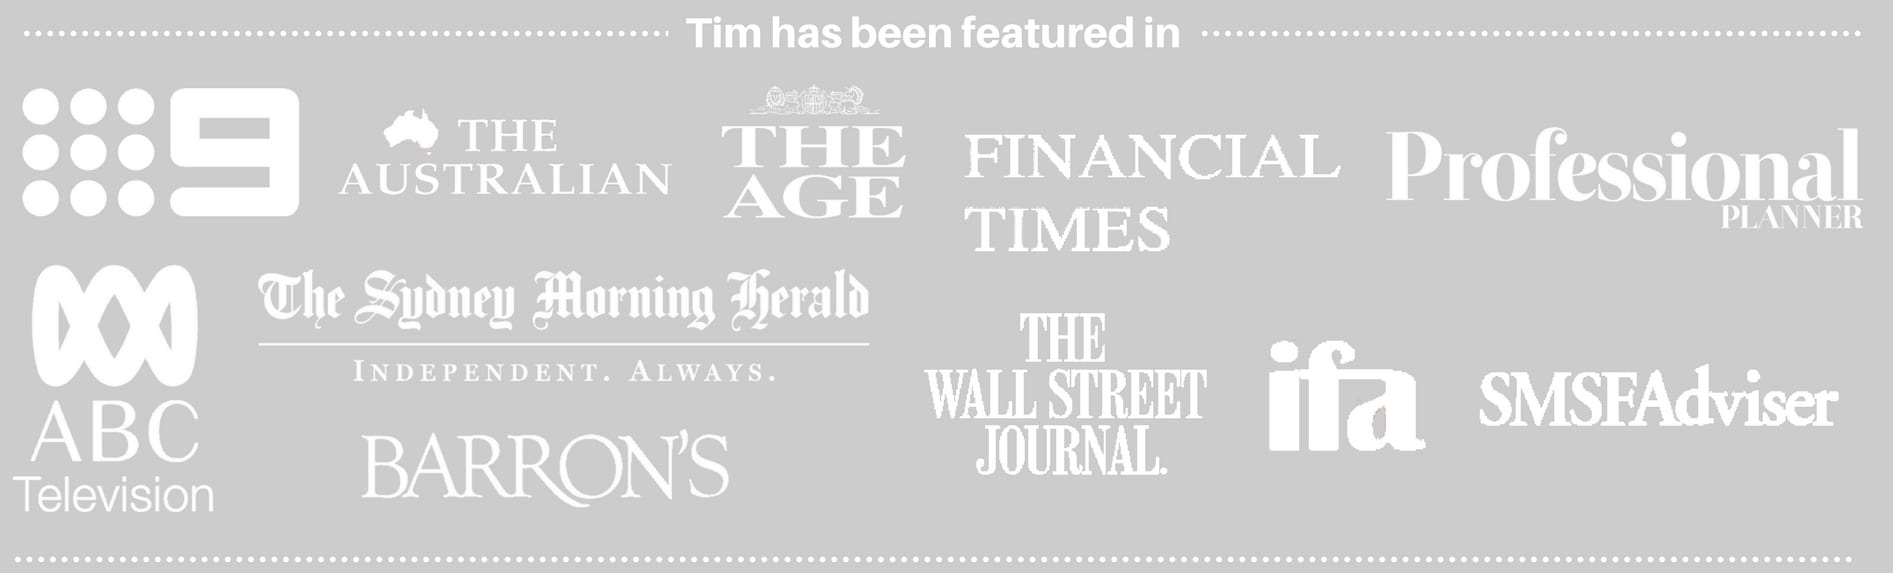 Independent Financial Advisor Tim Mackay Featured In the Media